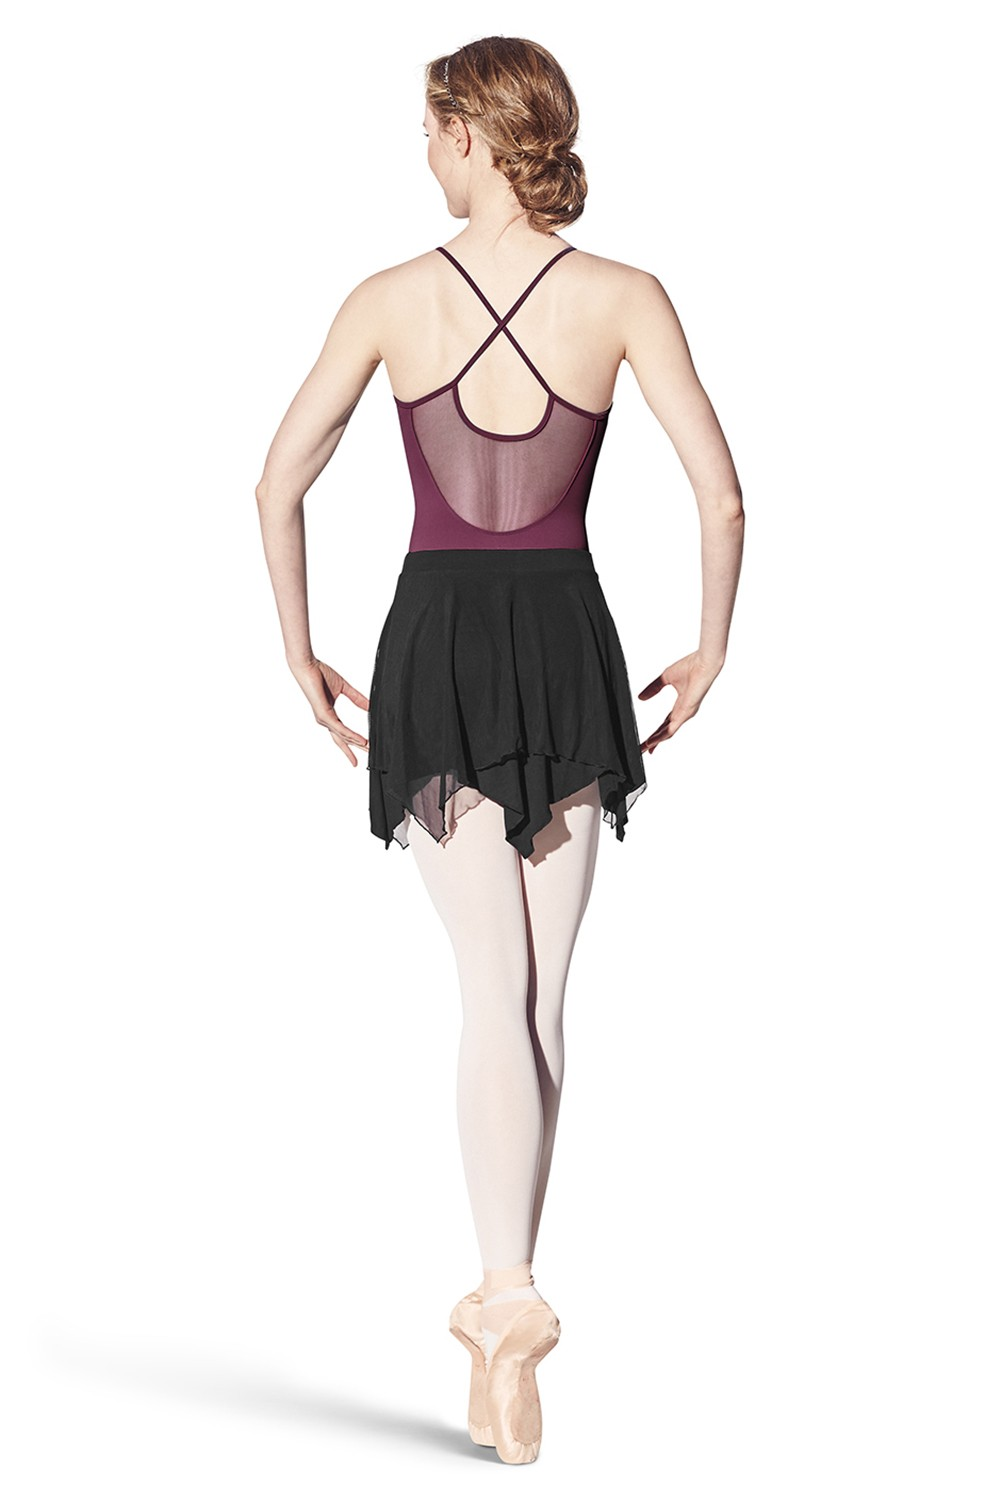 Hettie Women's Dance Leotards